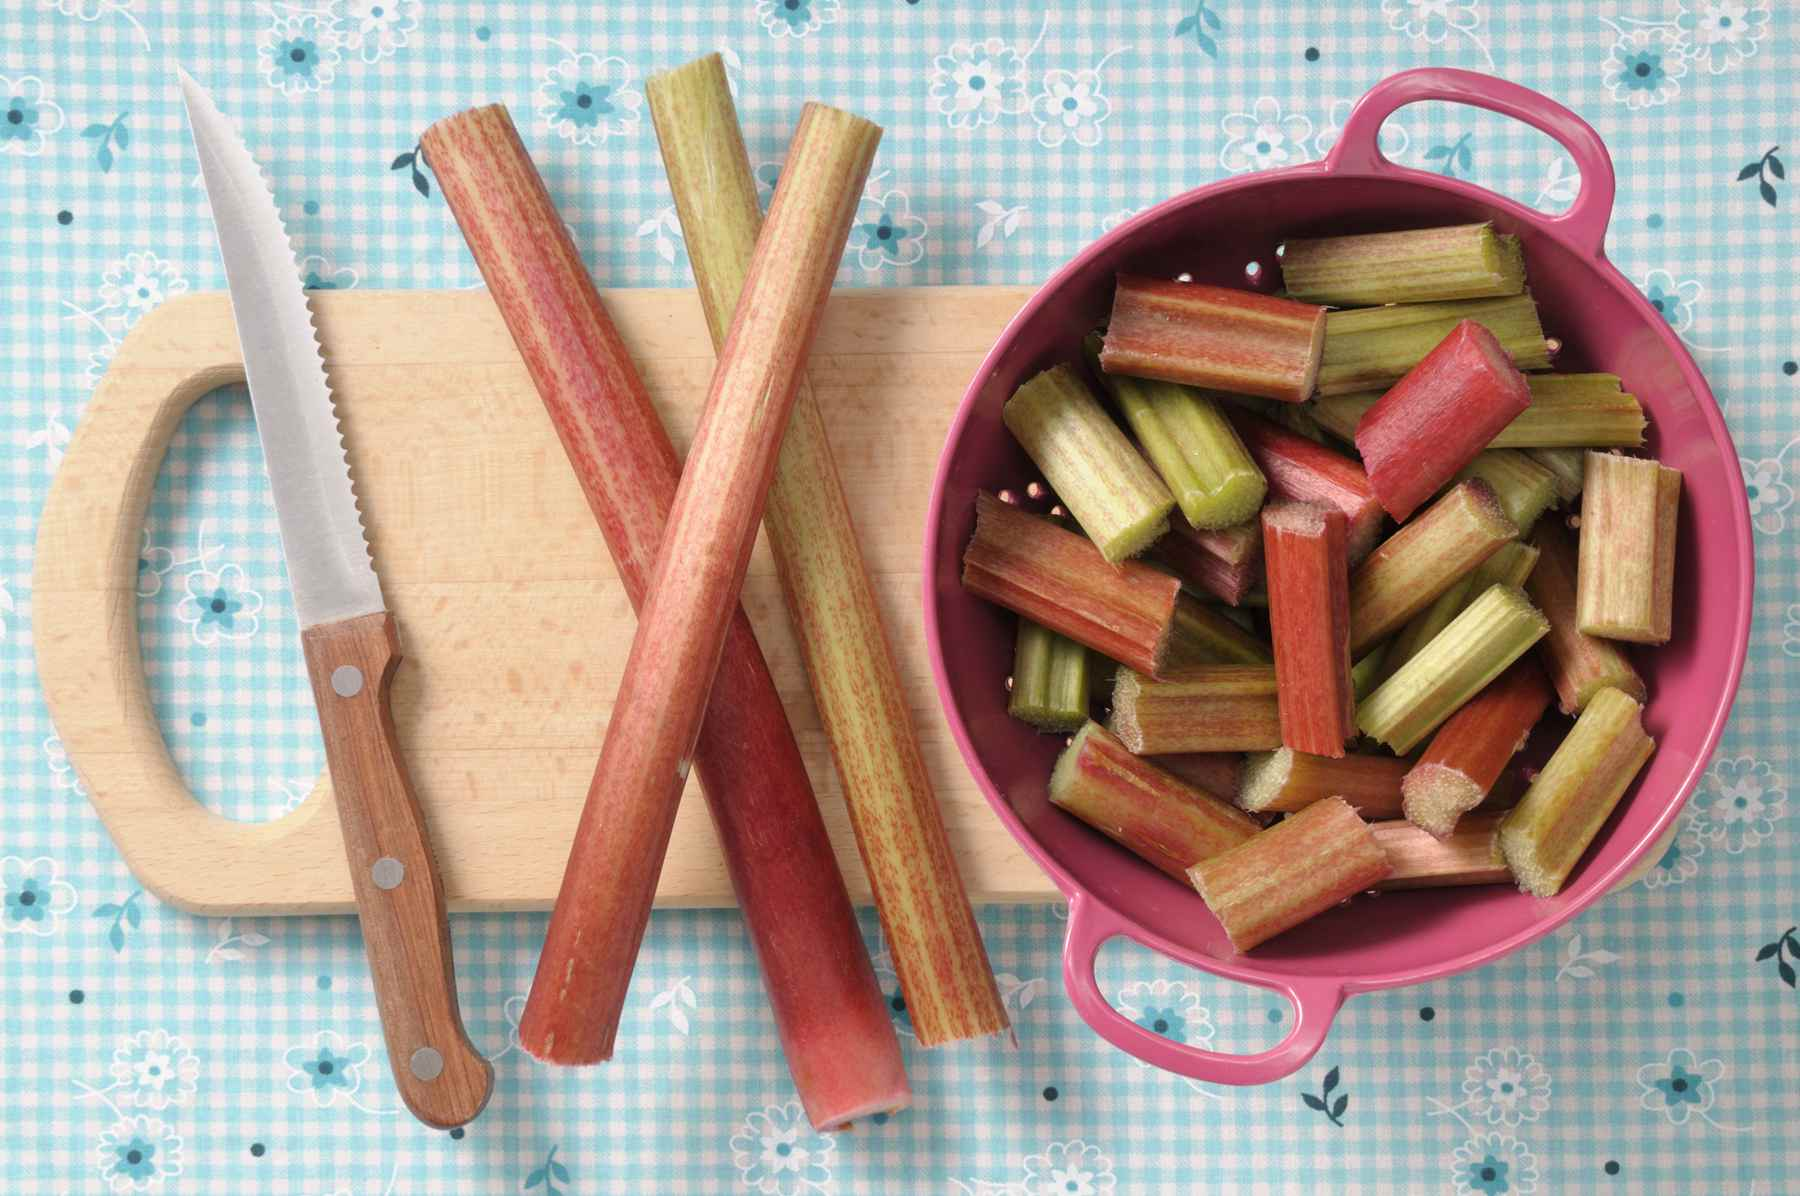 Sliced rhubarb on a cutting board and in a bowl